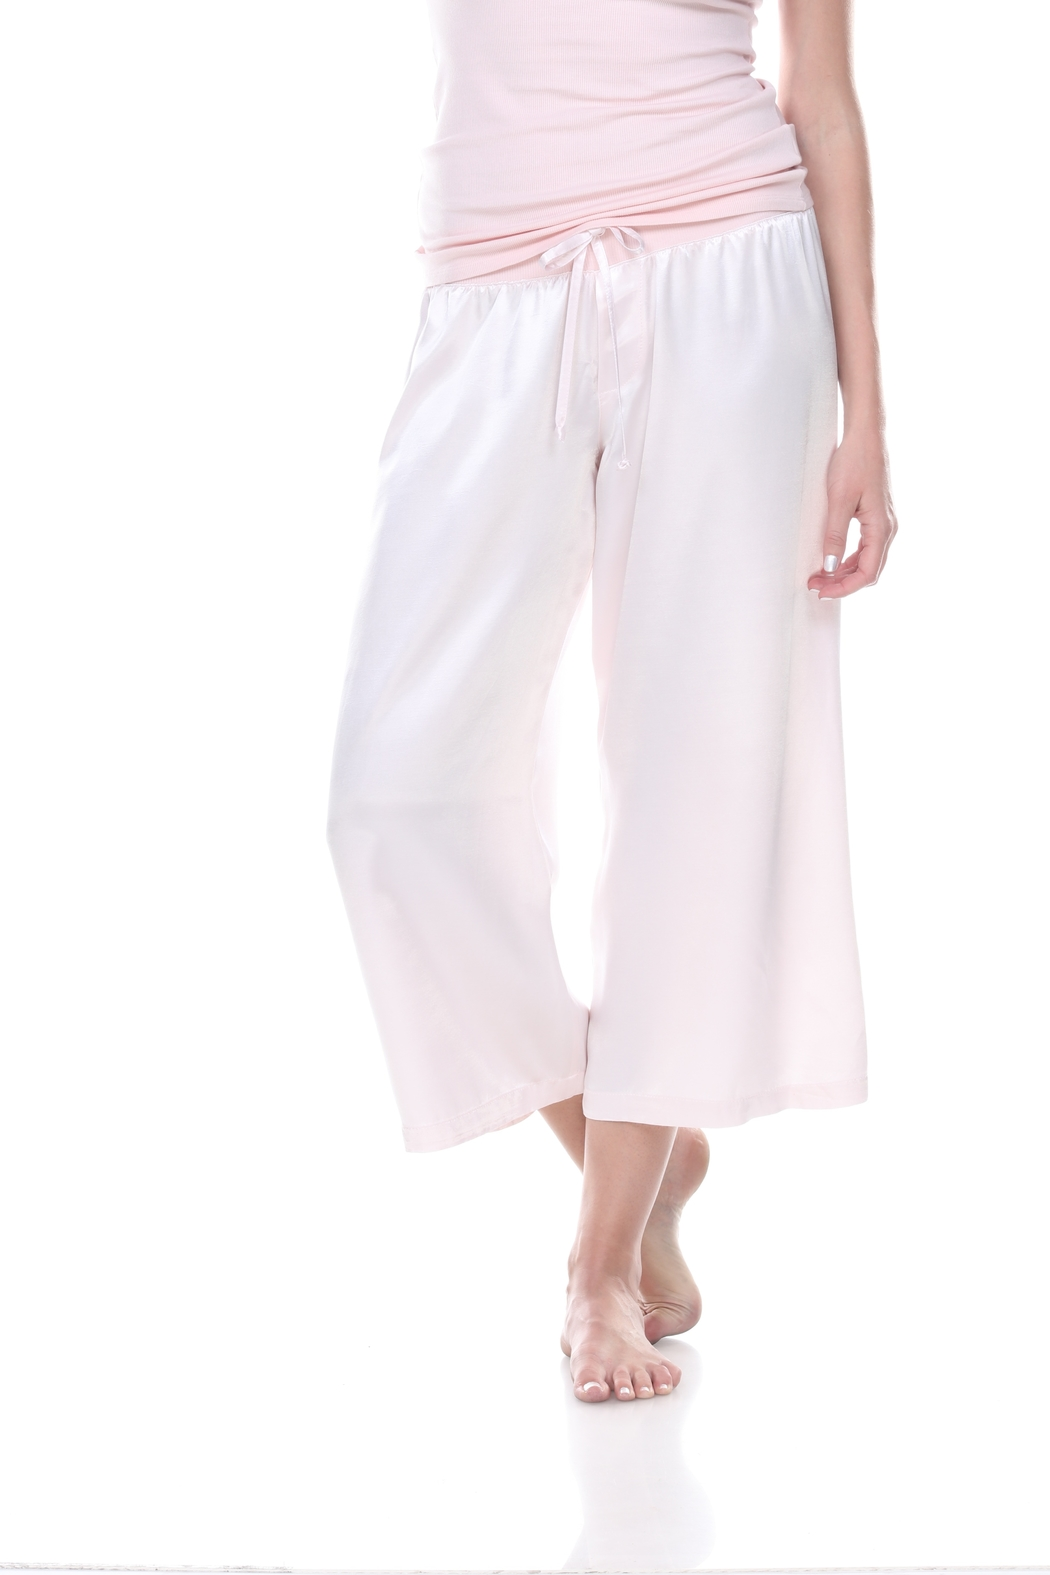 PJHARLOW Satin Ankle Pant With Rib Waistband And Adjustable Drawstring - Main Image